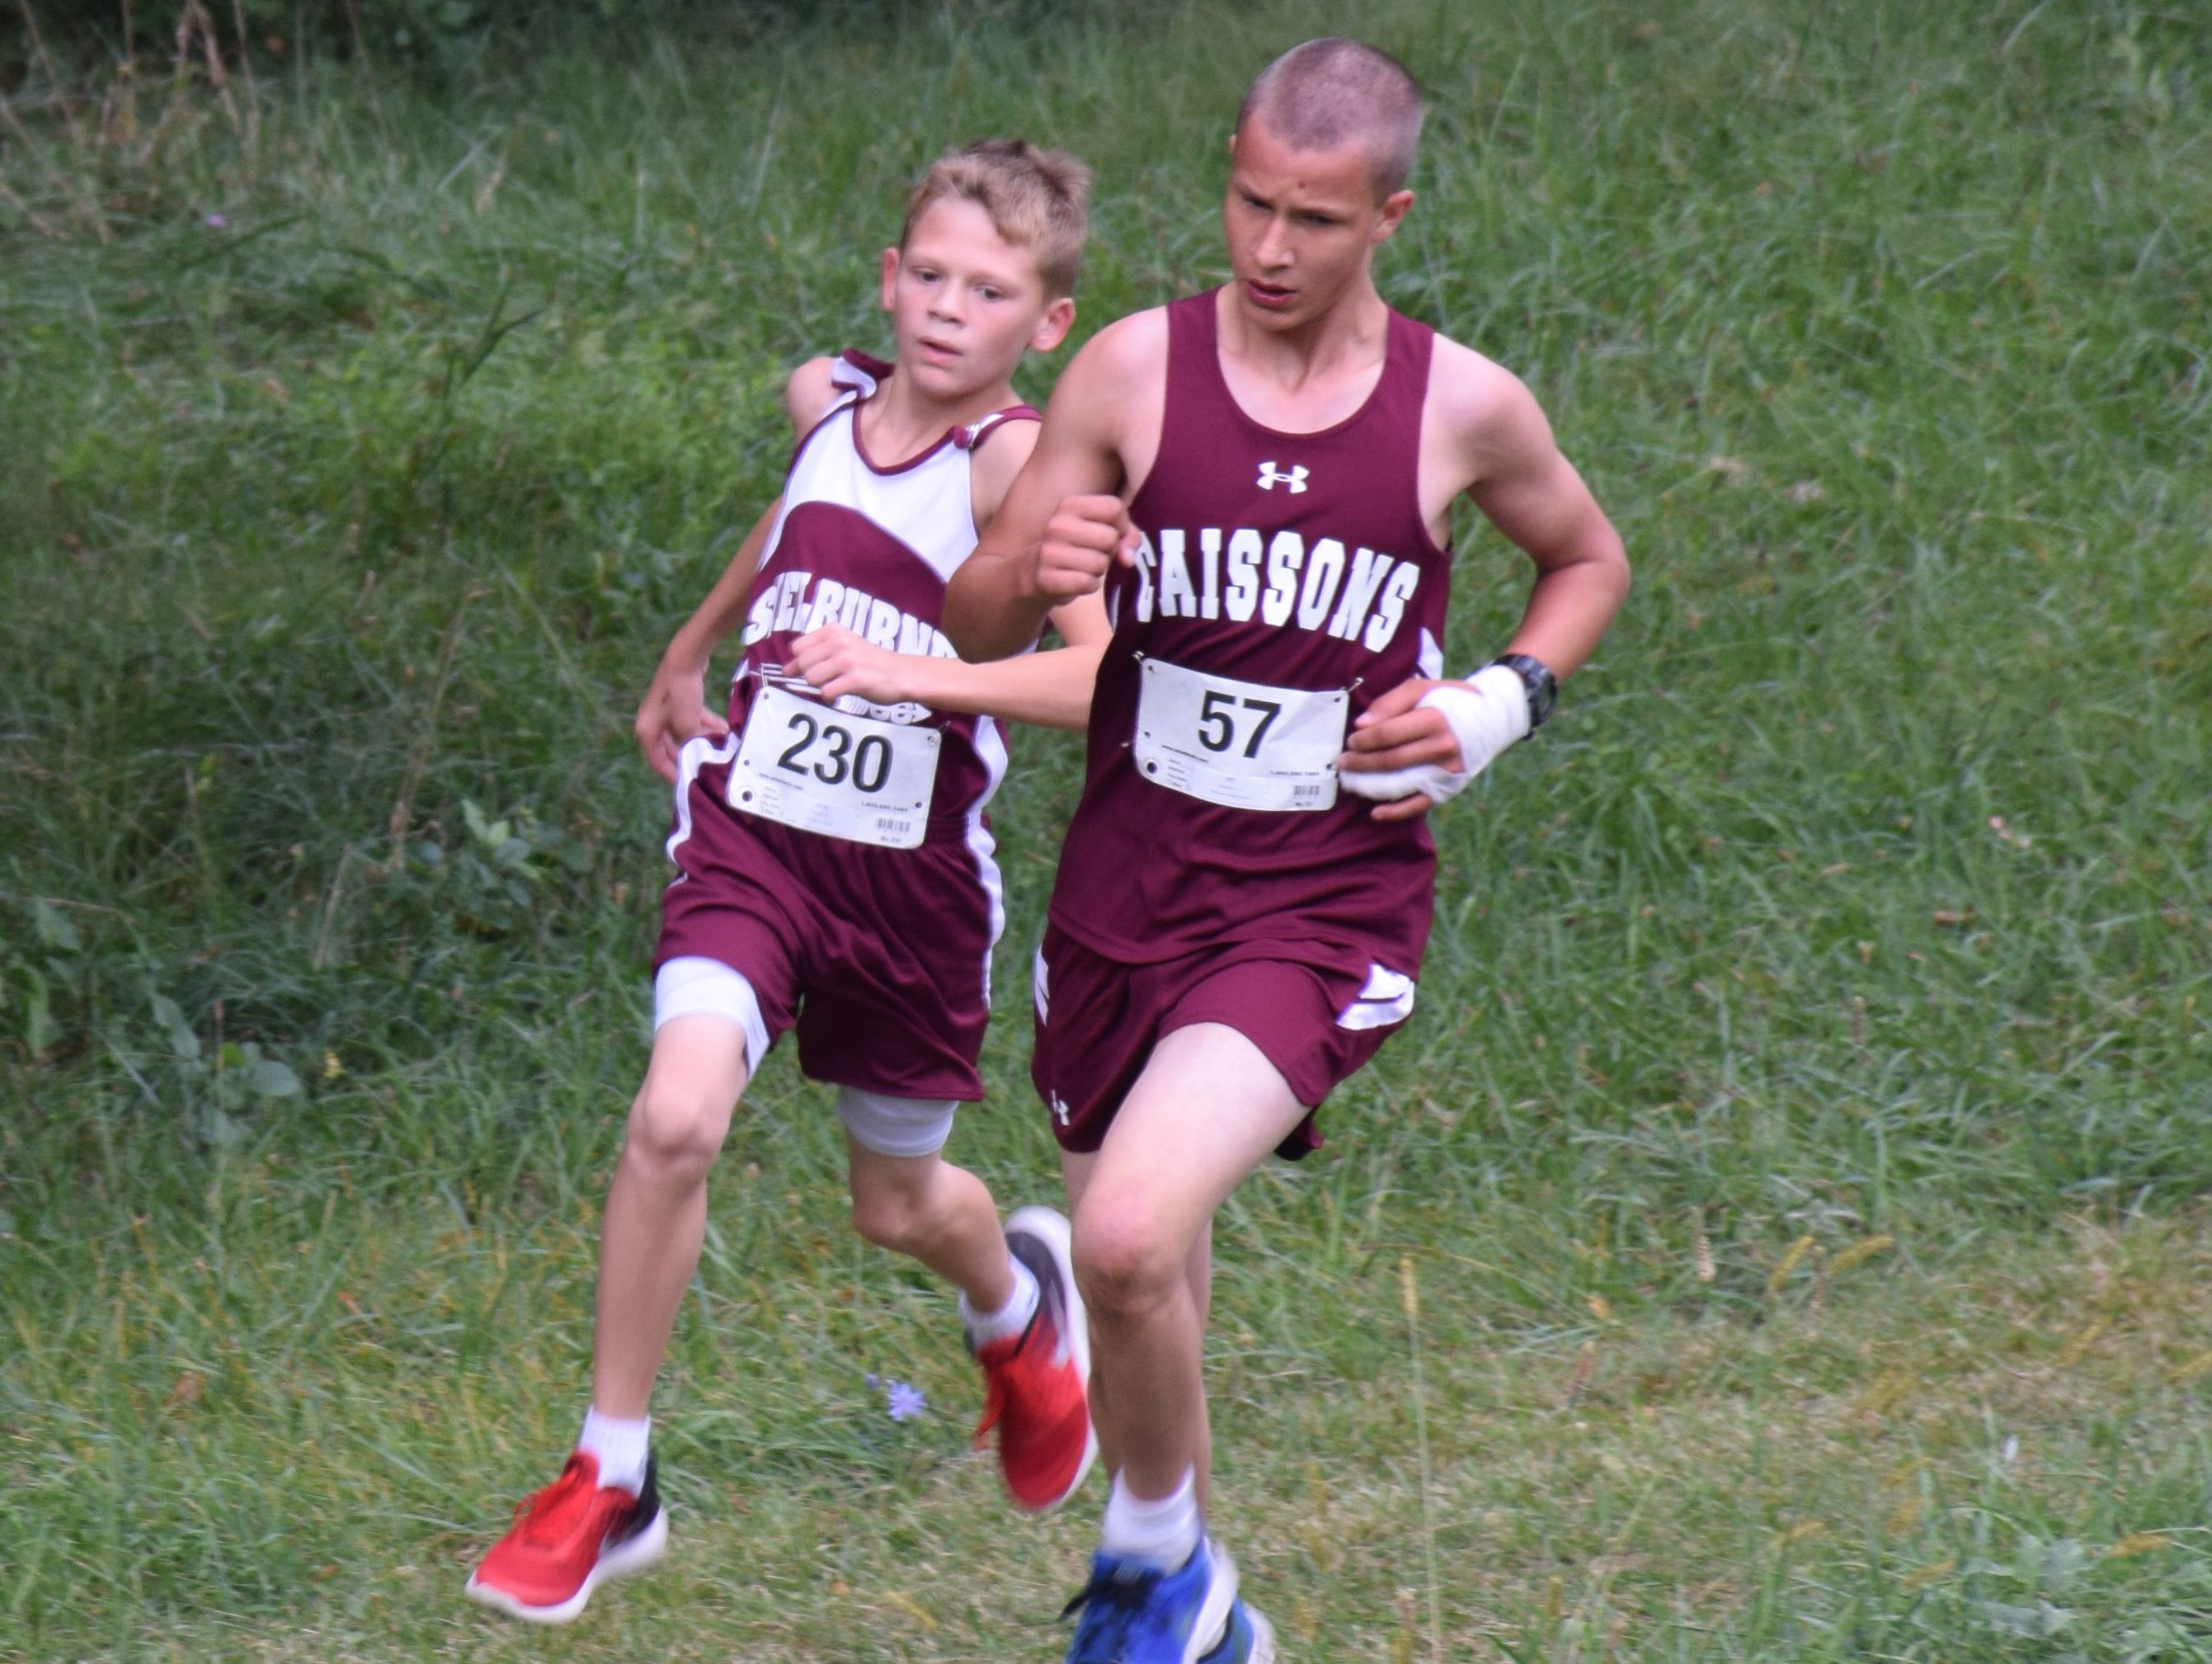 Fishburne Military School's Elijah Jackson, right, and Shelburne Middle School's T.J.Connor negotiate a turn during the middle school boys race at the Augusta County Cross Country Invitational at the Wilson Workforce and Rehabilitation Center in Fishersville on Saturday, Sept. 17, 2016.